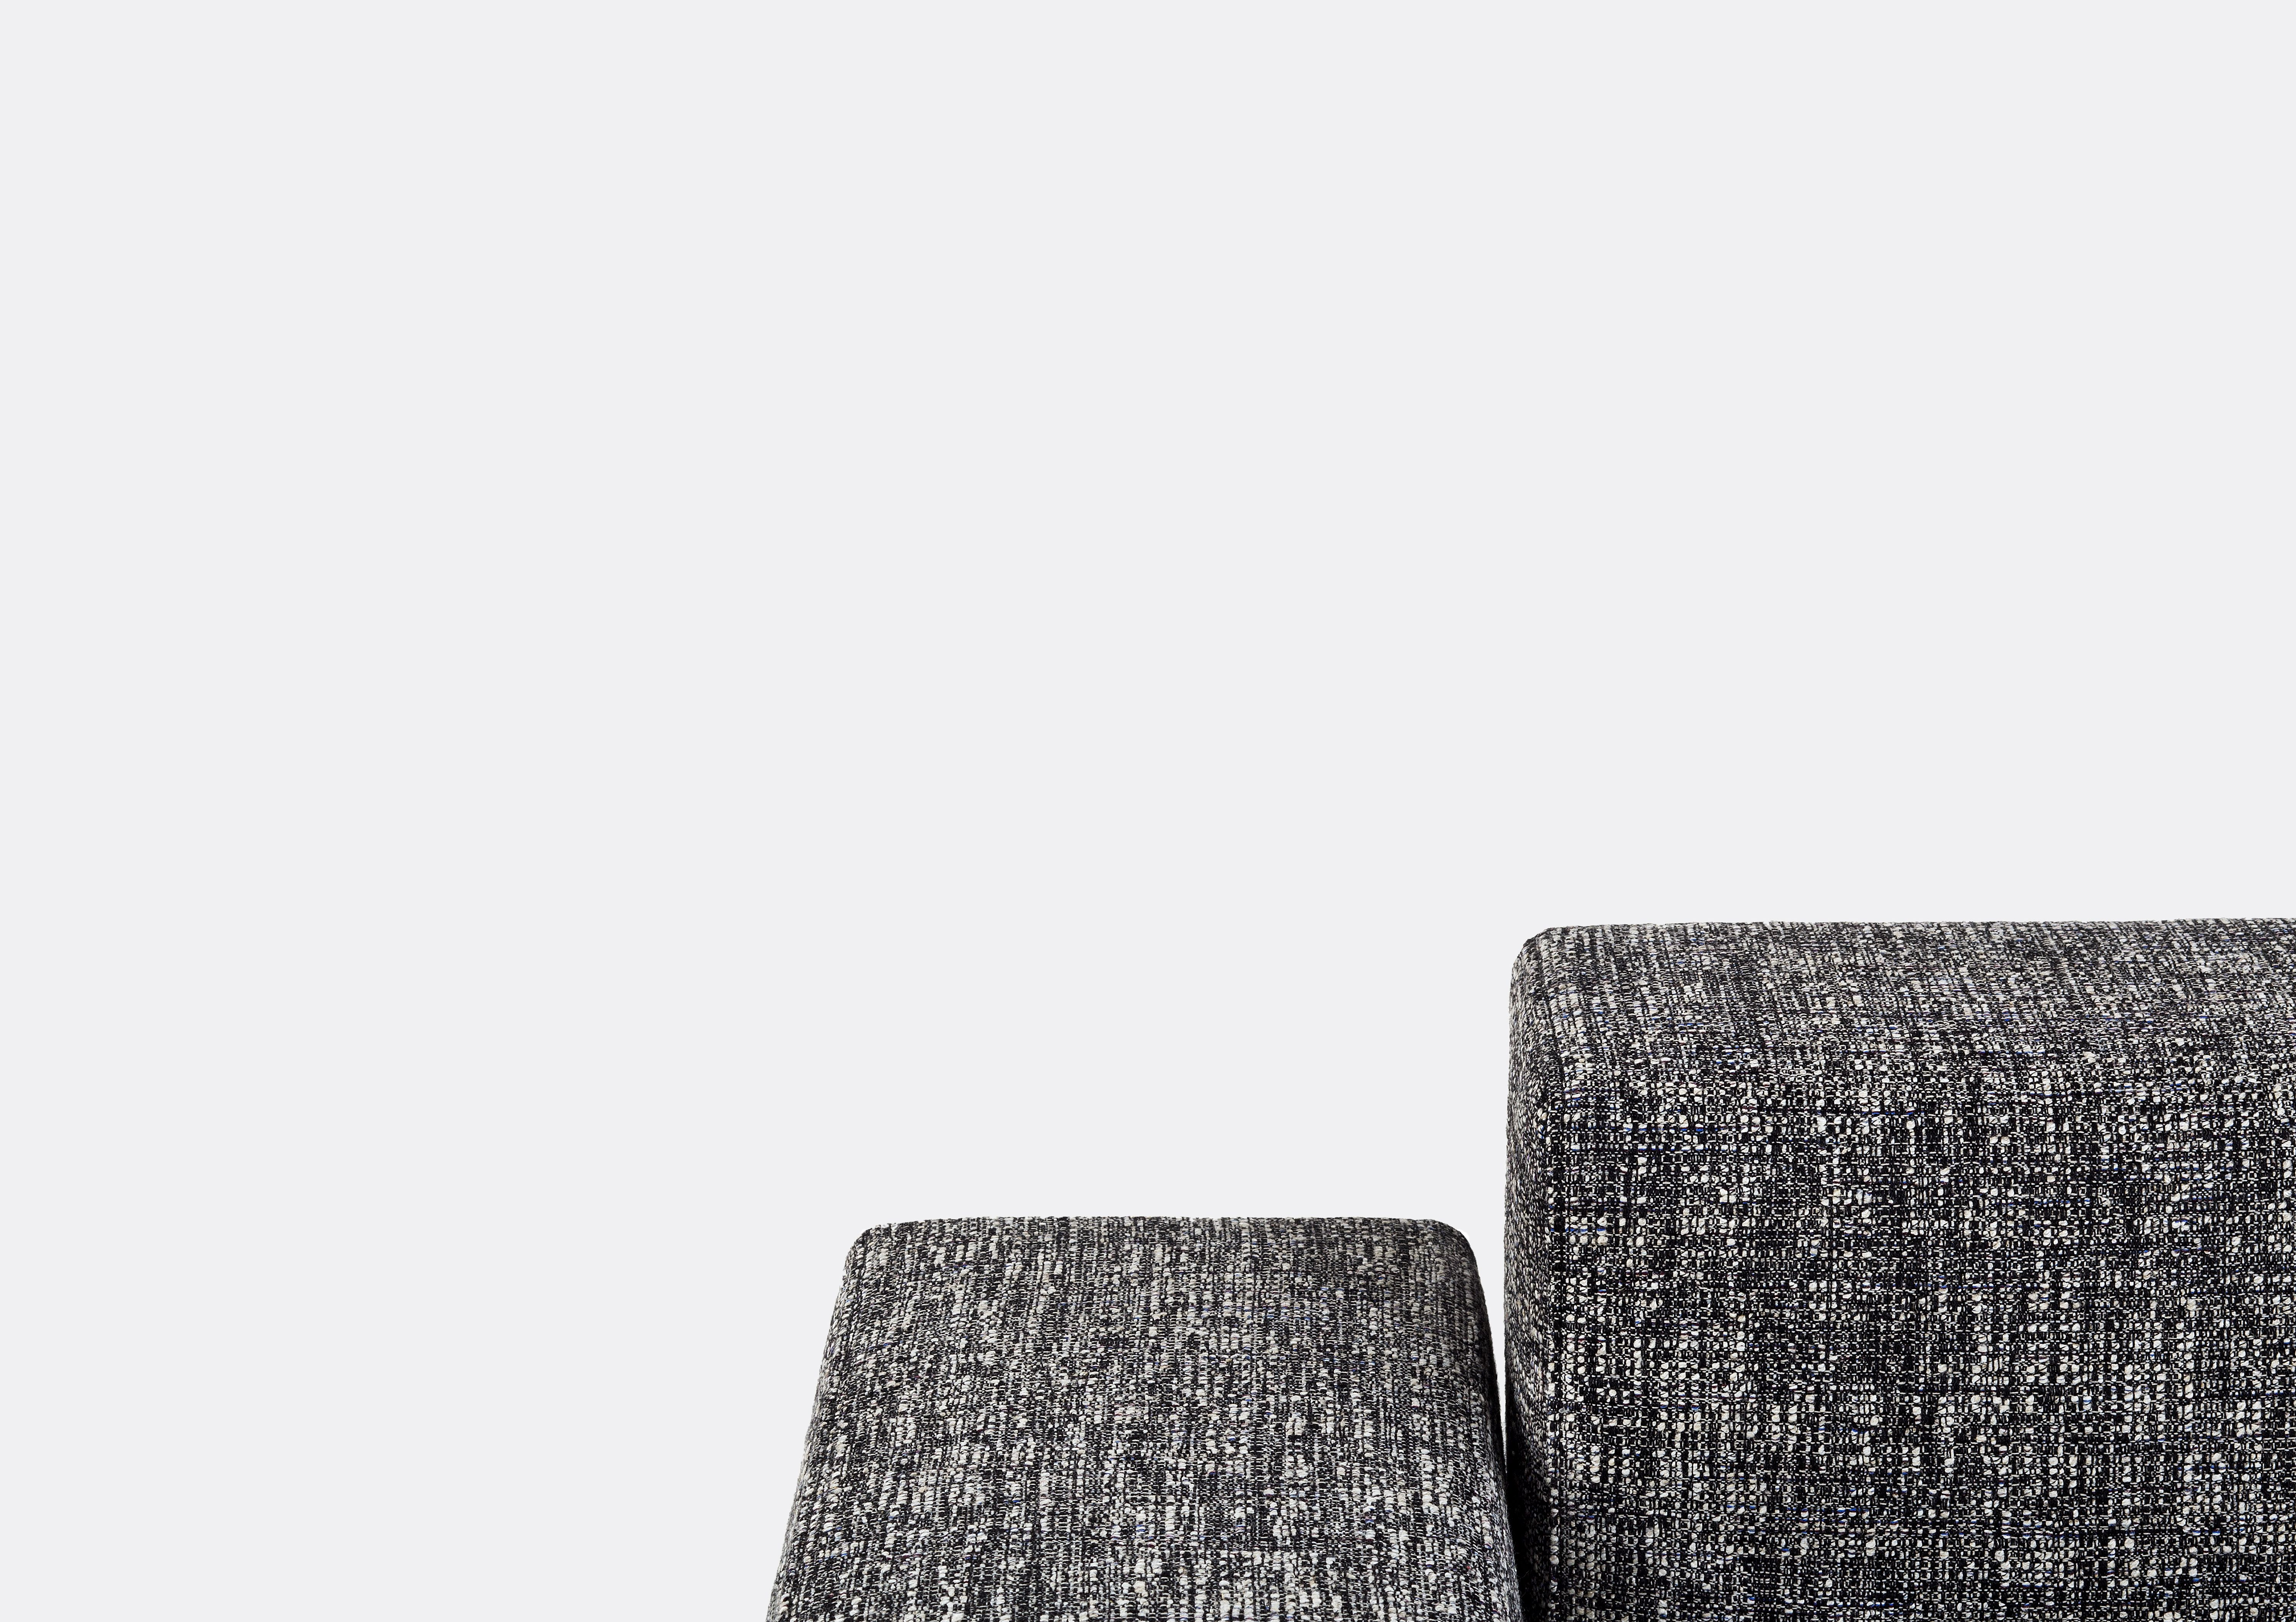 the refolo sofa by charlotte perriand in kvadratraf simons textiles from the collection